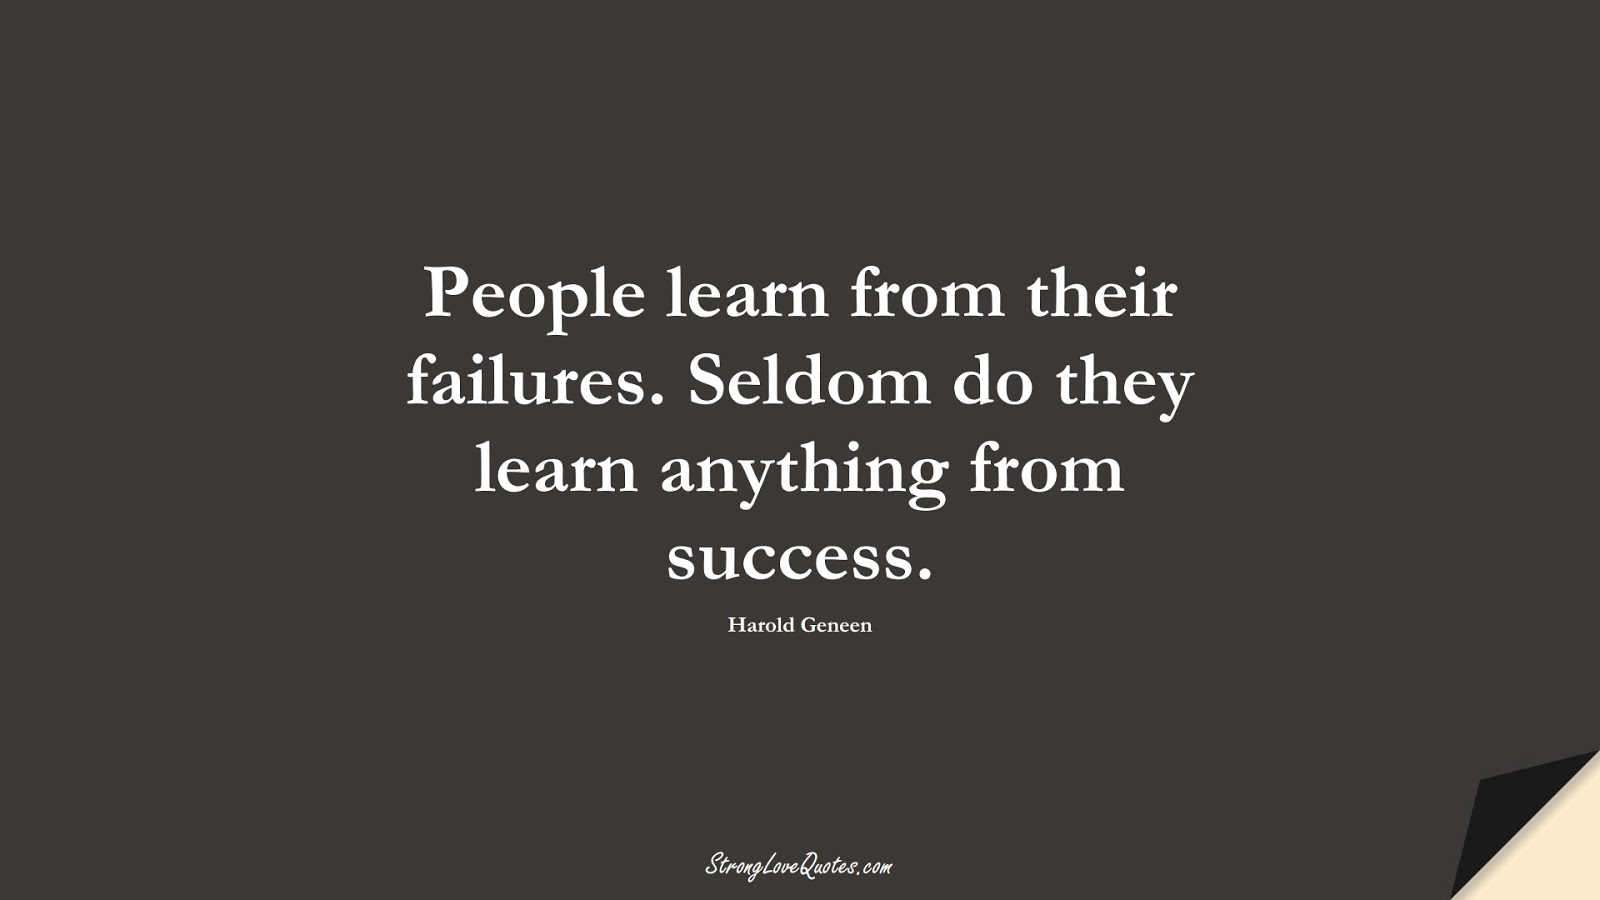 People learn from their failures. Seldom do they learn anything from success. (Harold Geneen);  #LearningQuotes